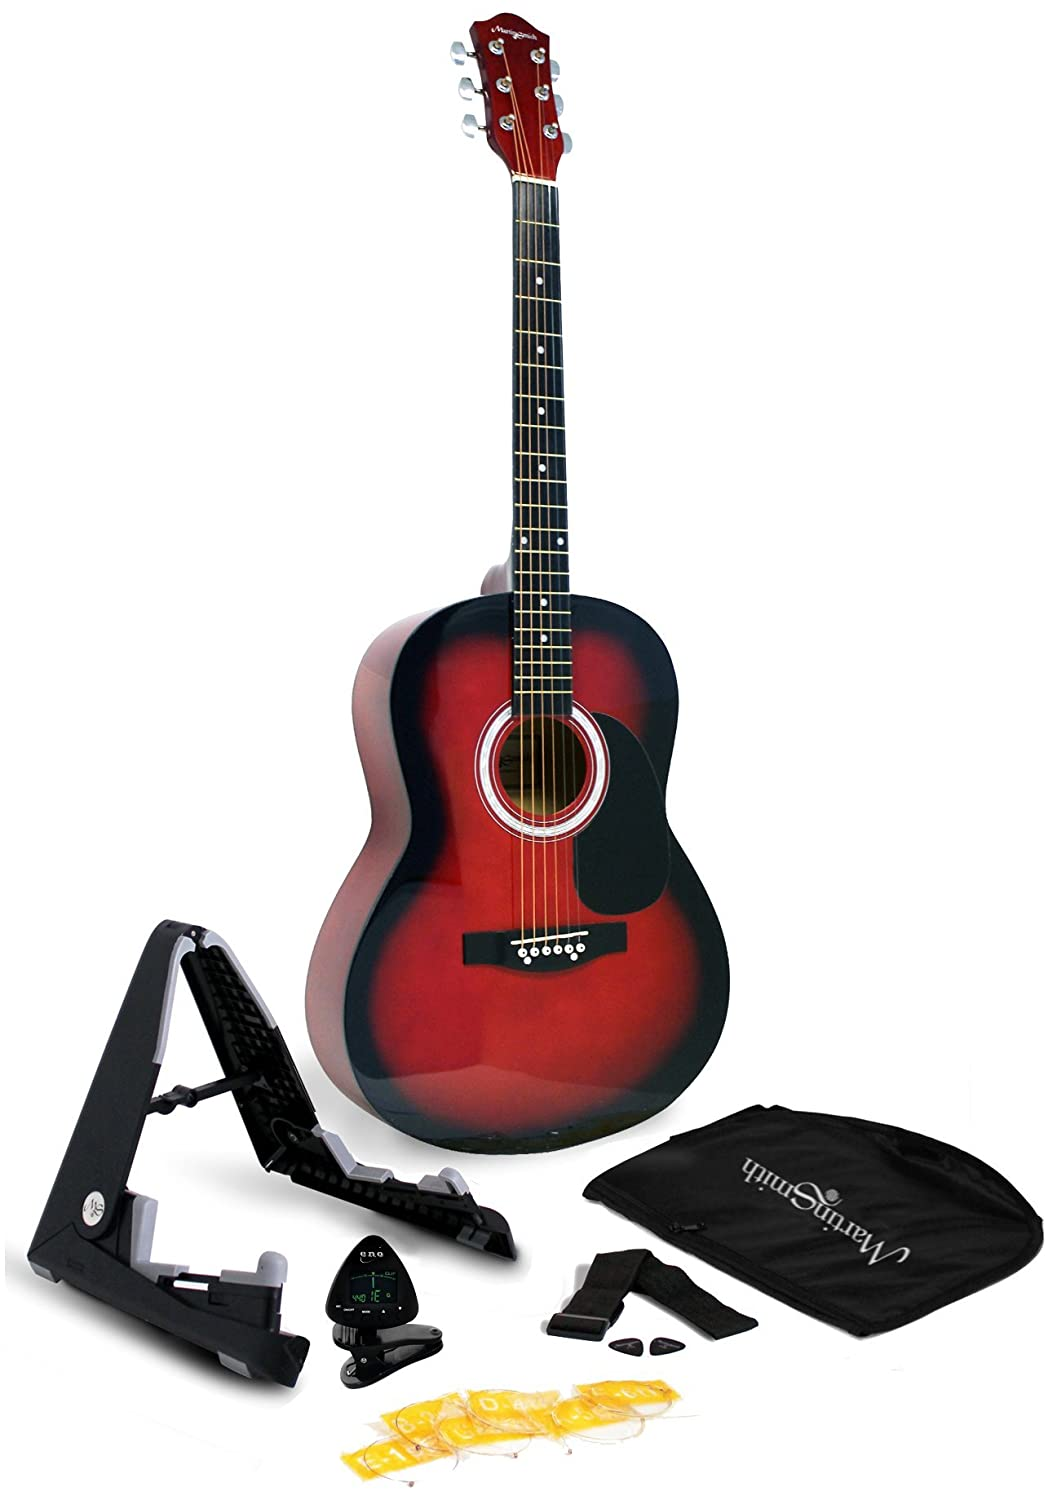 Martin Smith 6 String Acoustic Guitar SuperKit with Stand, Tuner, Gig Bag, Strap, Picks and Strings-Natural, Blue (W-101-BL-PK)